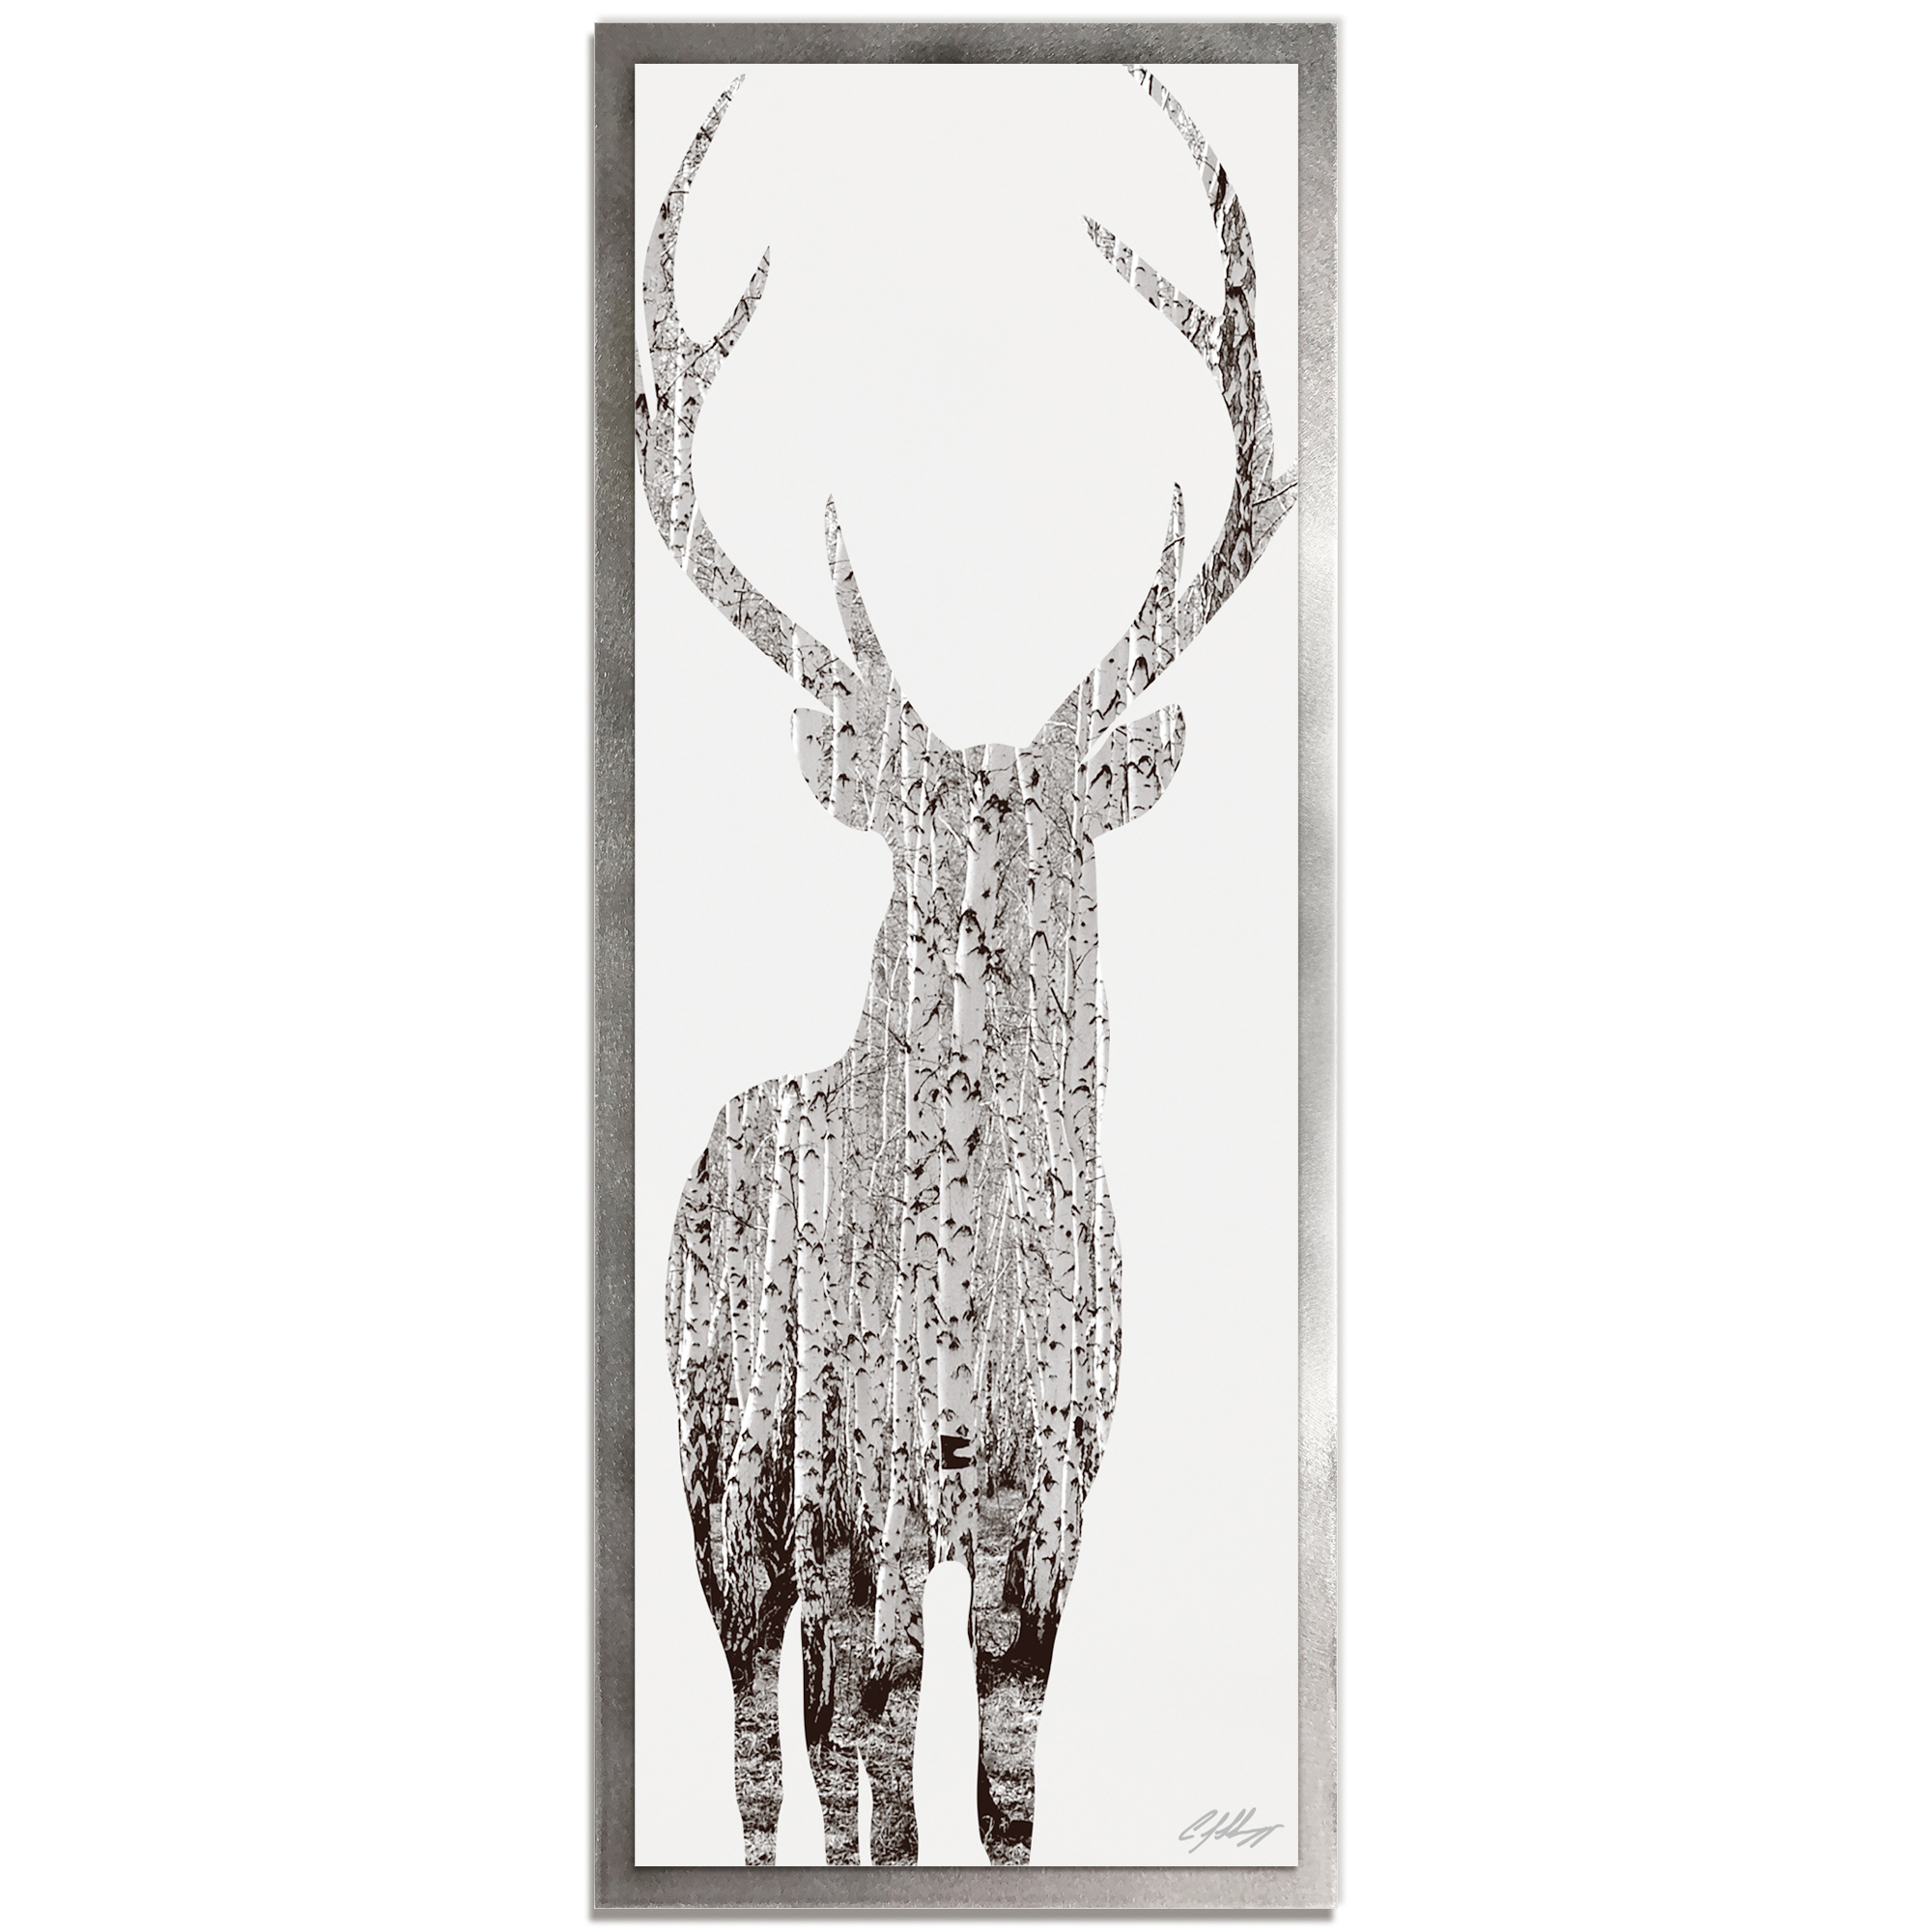 Adam Schwoeppe 'Birch Deer Framed' 19in x 48in Contemporary Animal Silhouette Art on Colored Metal